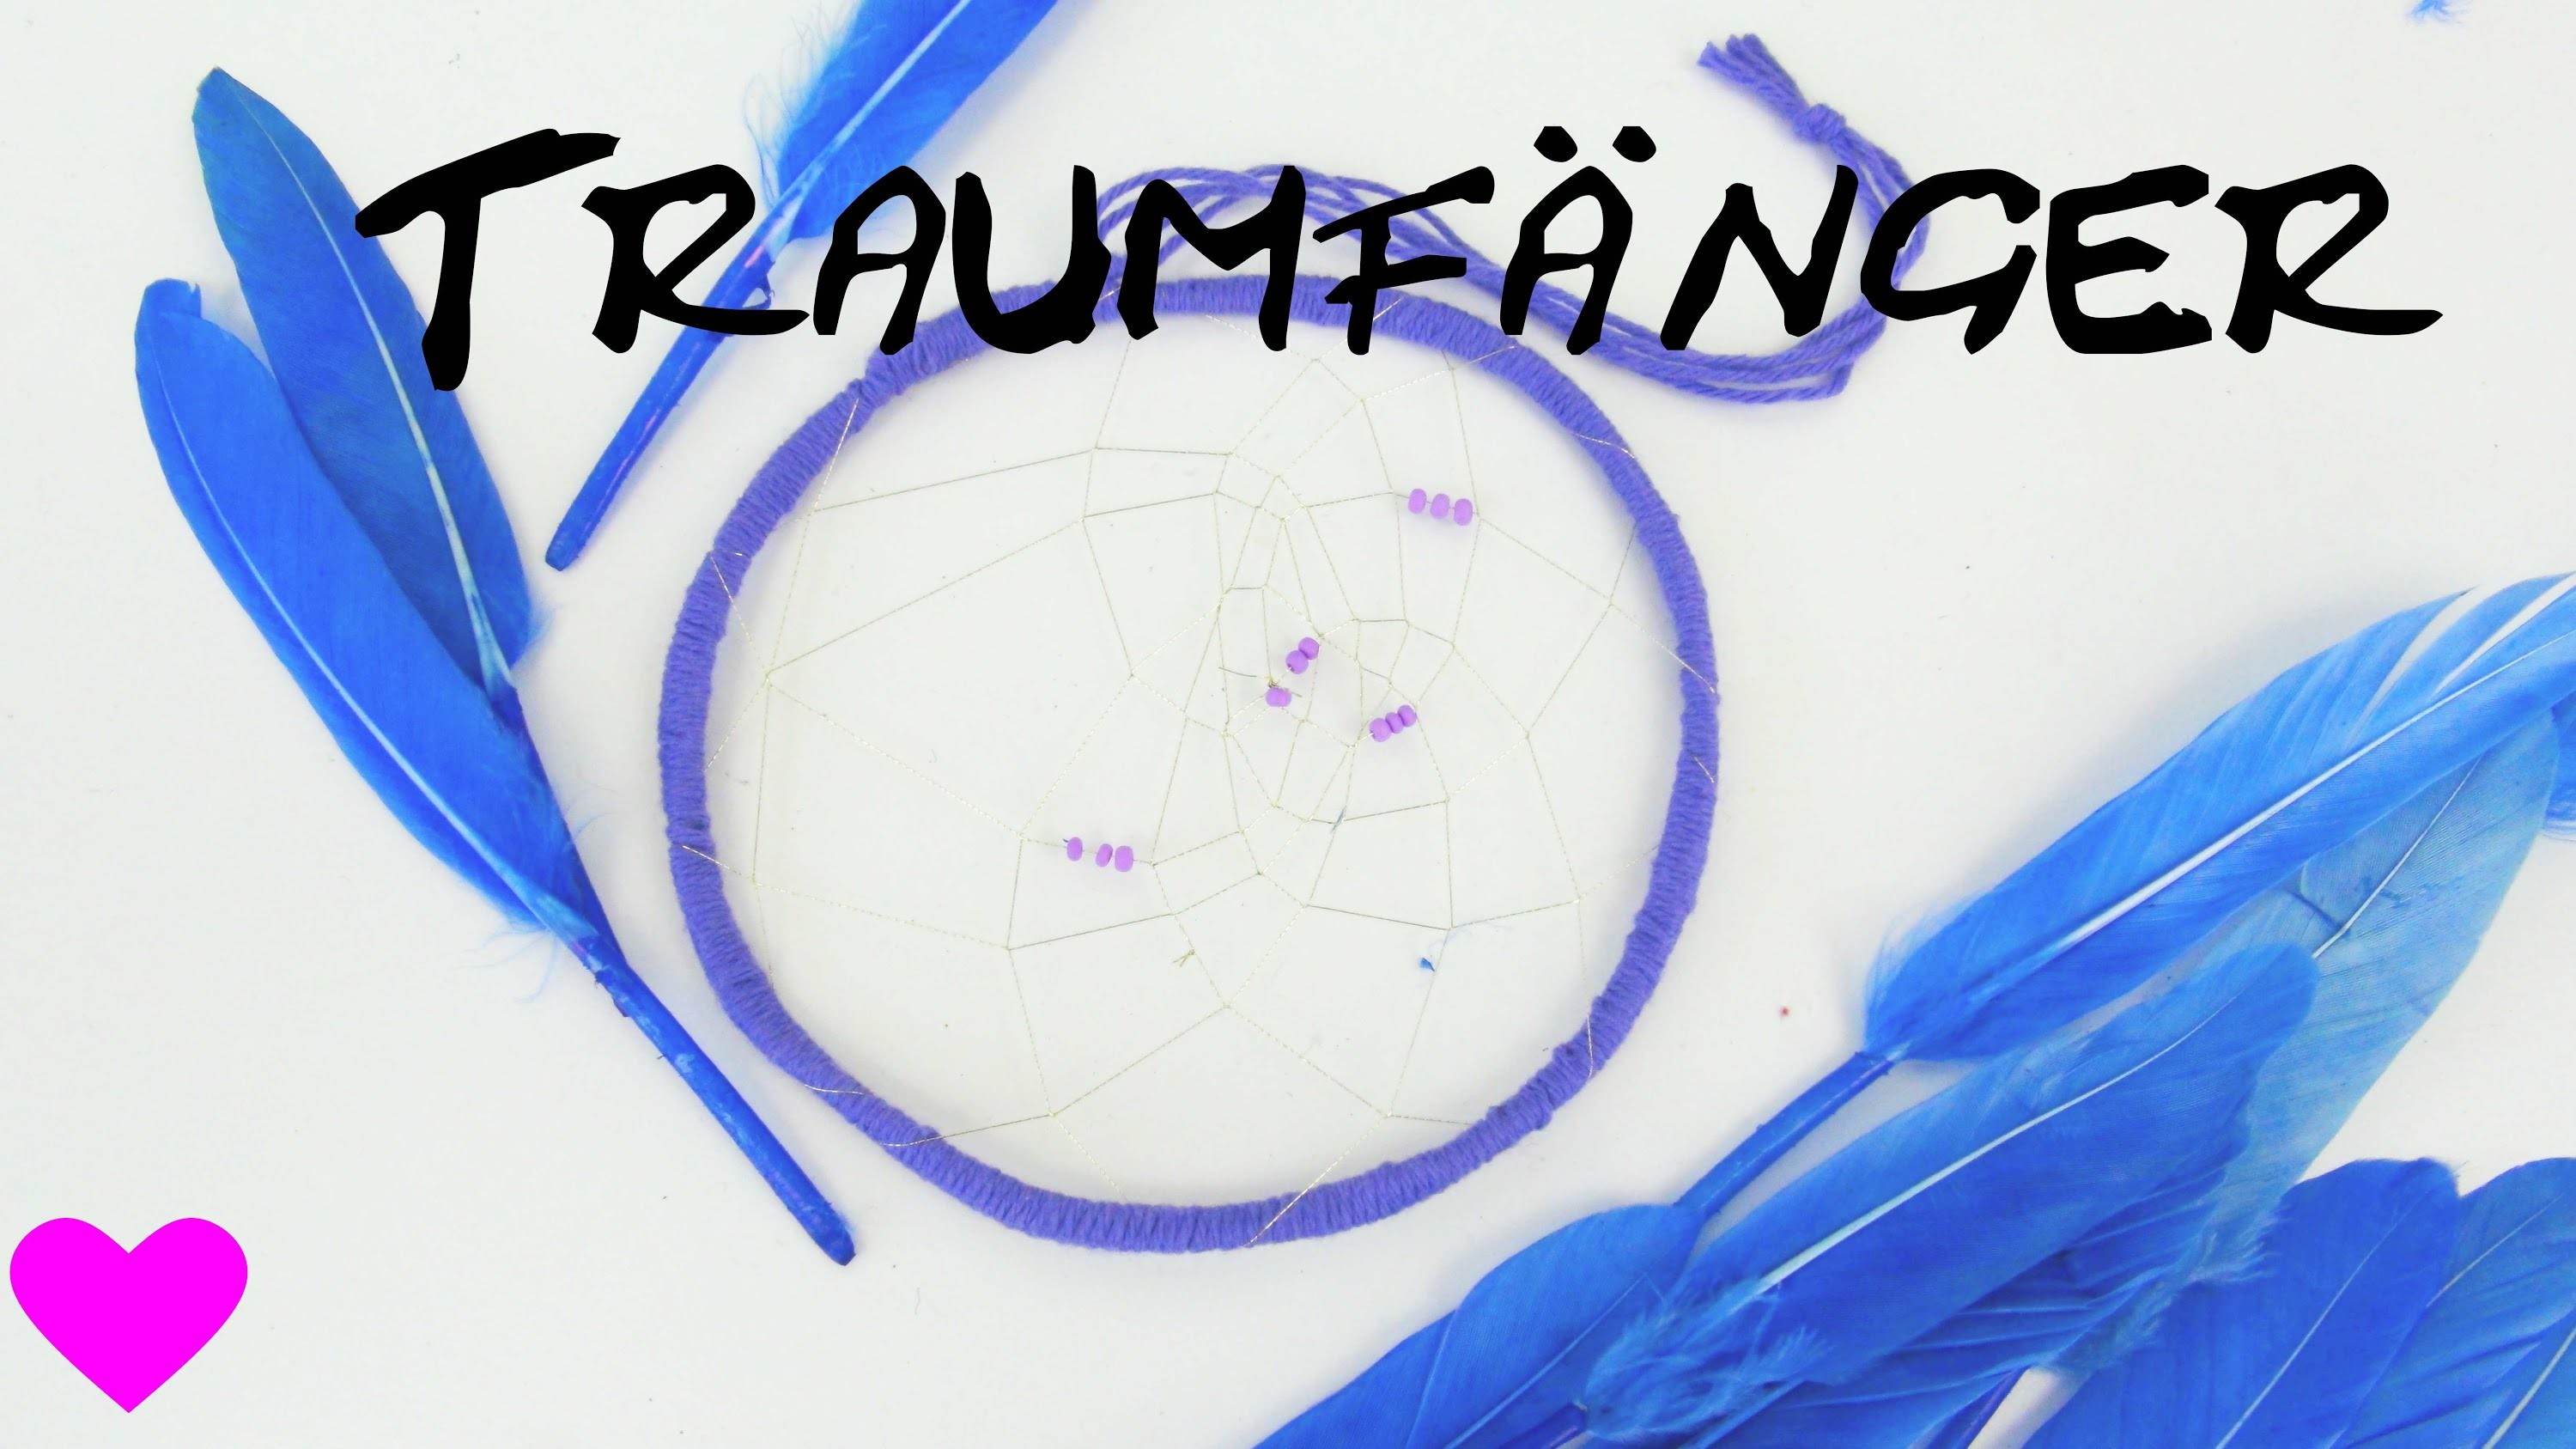 Traumfänger basteln Bastelanleitung. How to make a Dreamcatcher atrapasueños Tutorial